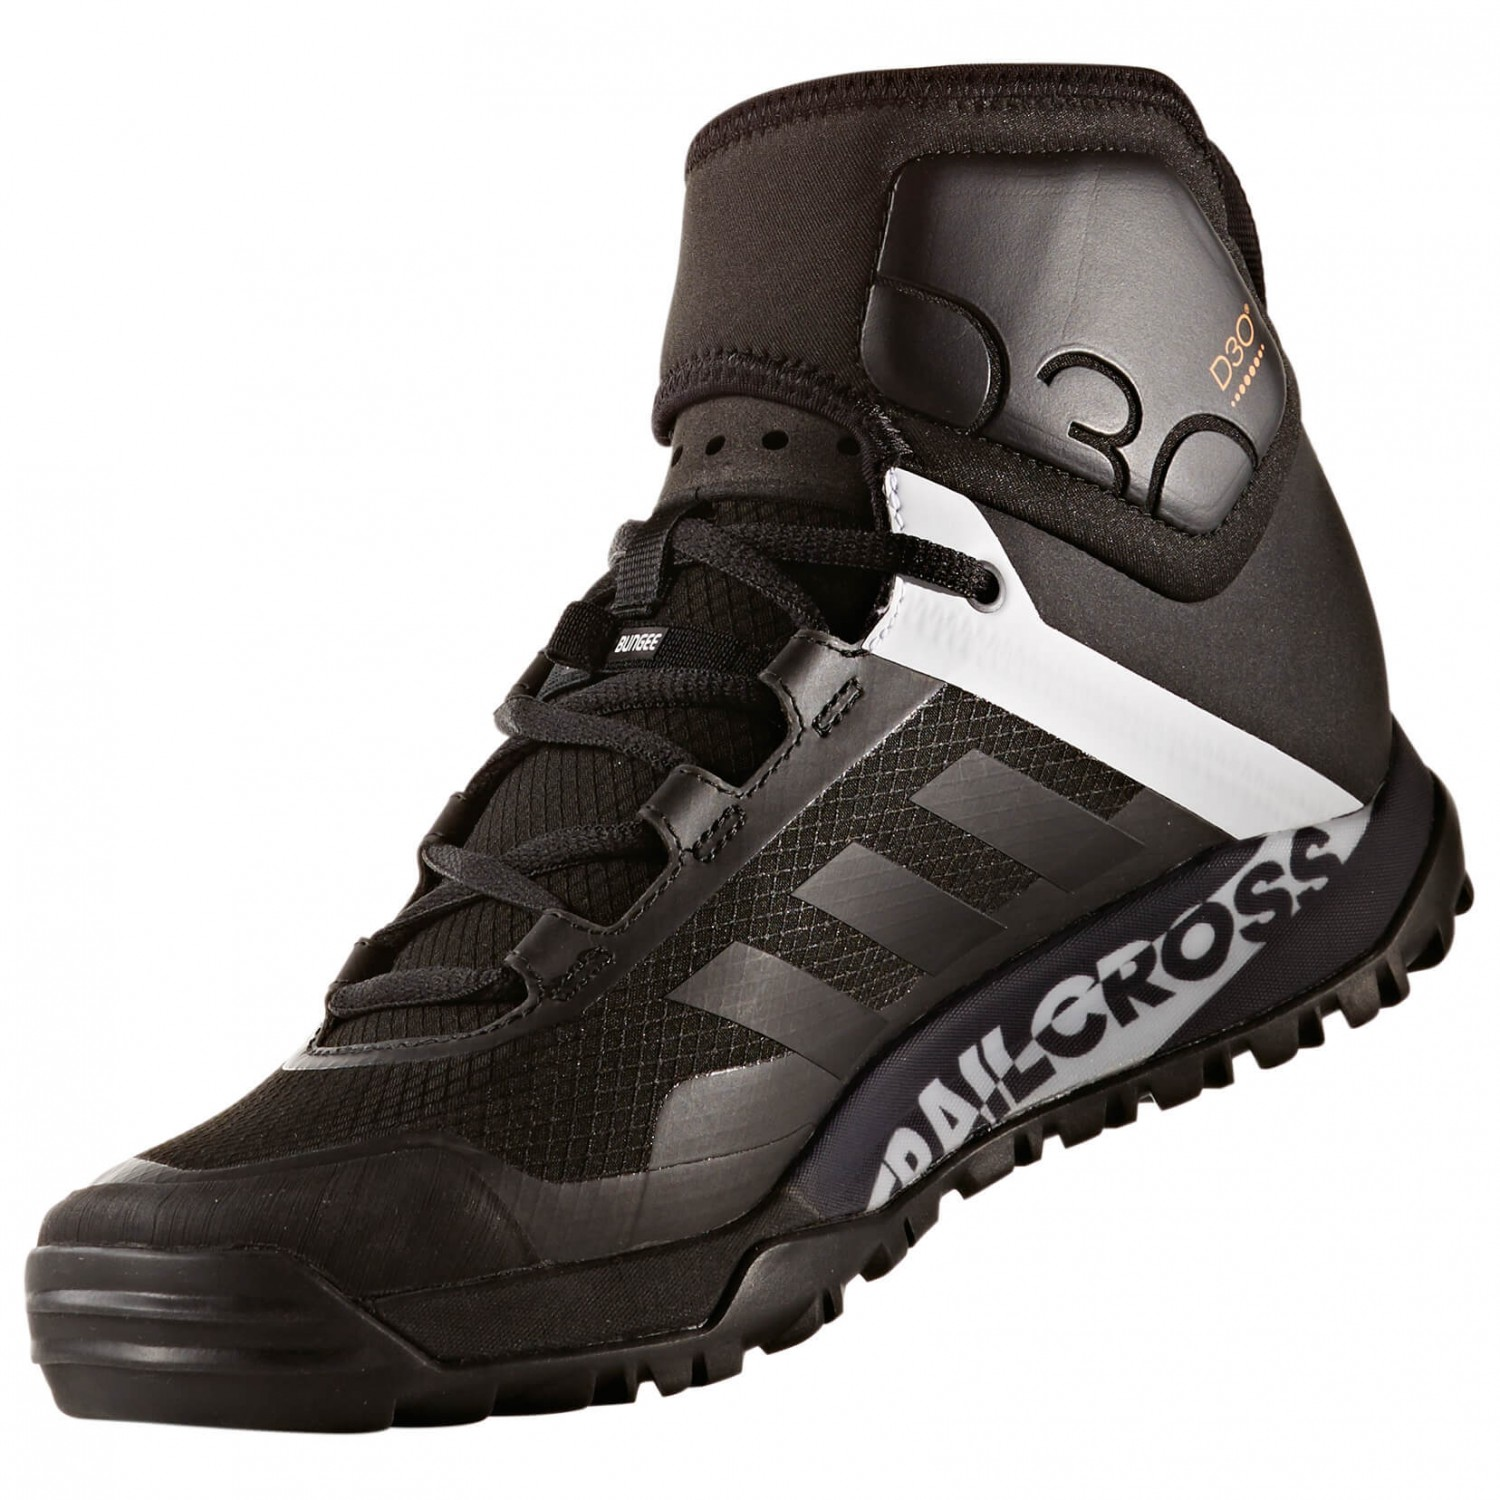 Top Mtb Shoes